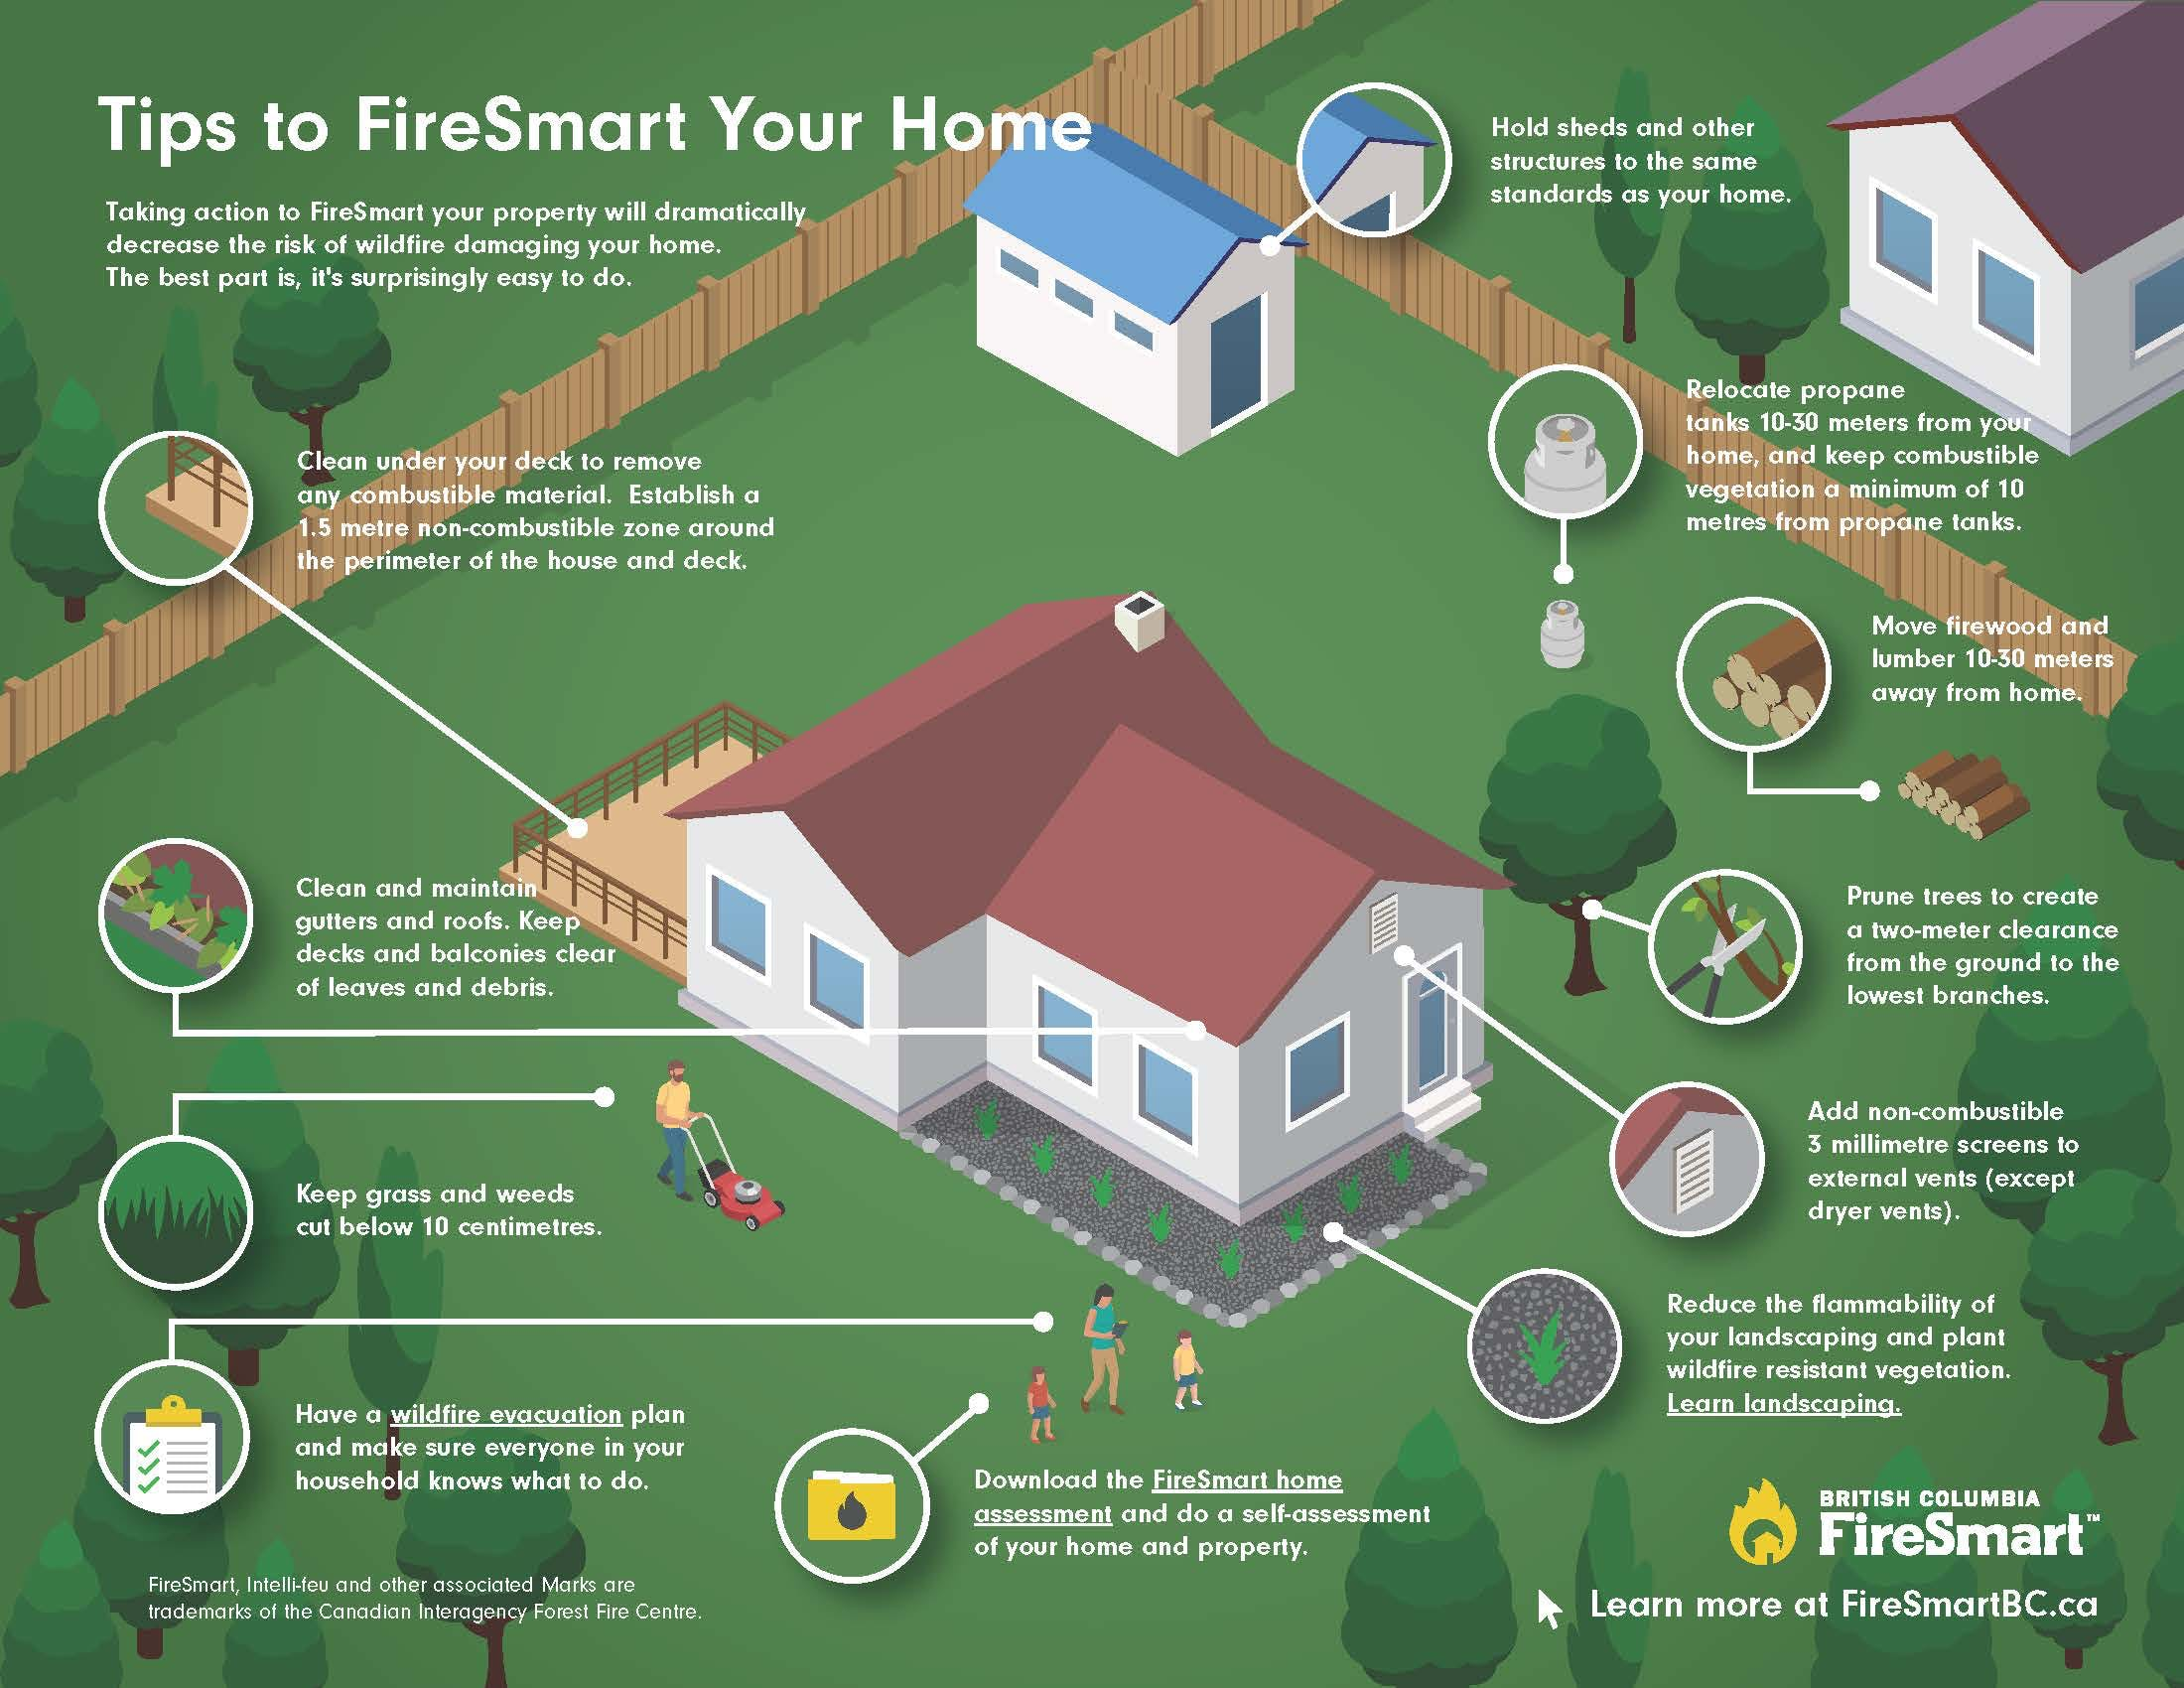 Tips to FireSmart Your Home